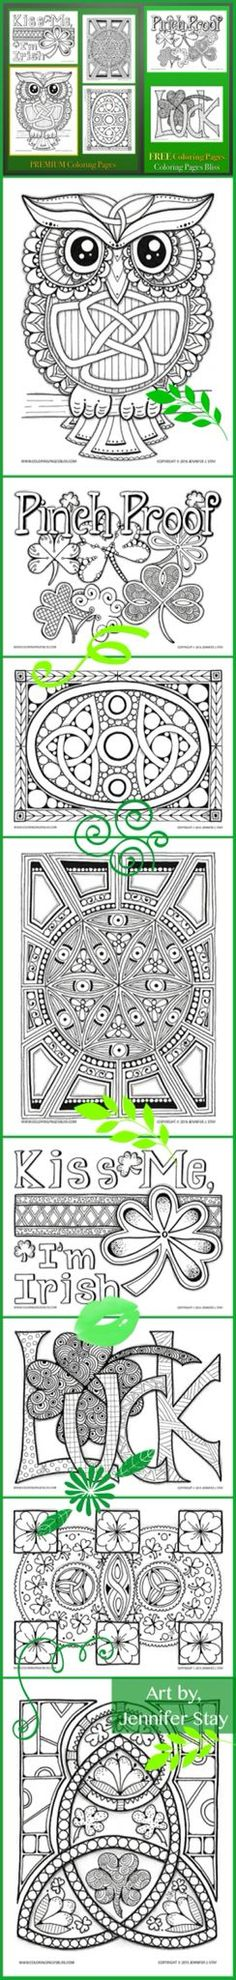 coloring pages for st patricks day printable coloring pages by jennifer stay full of